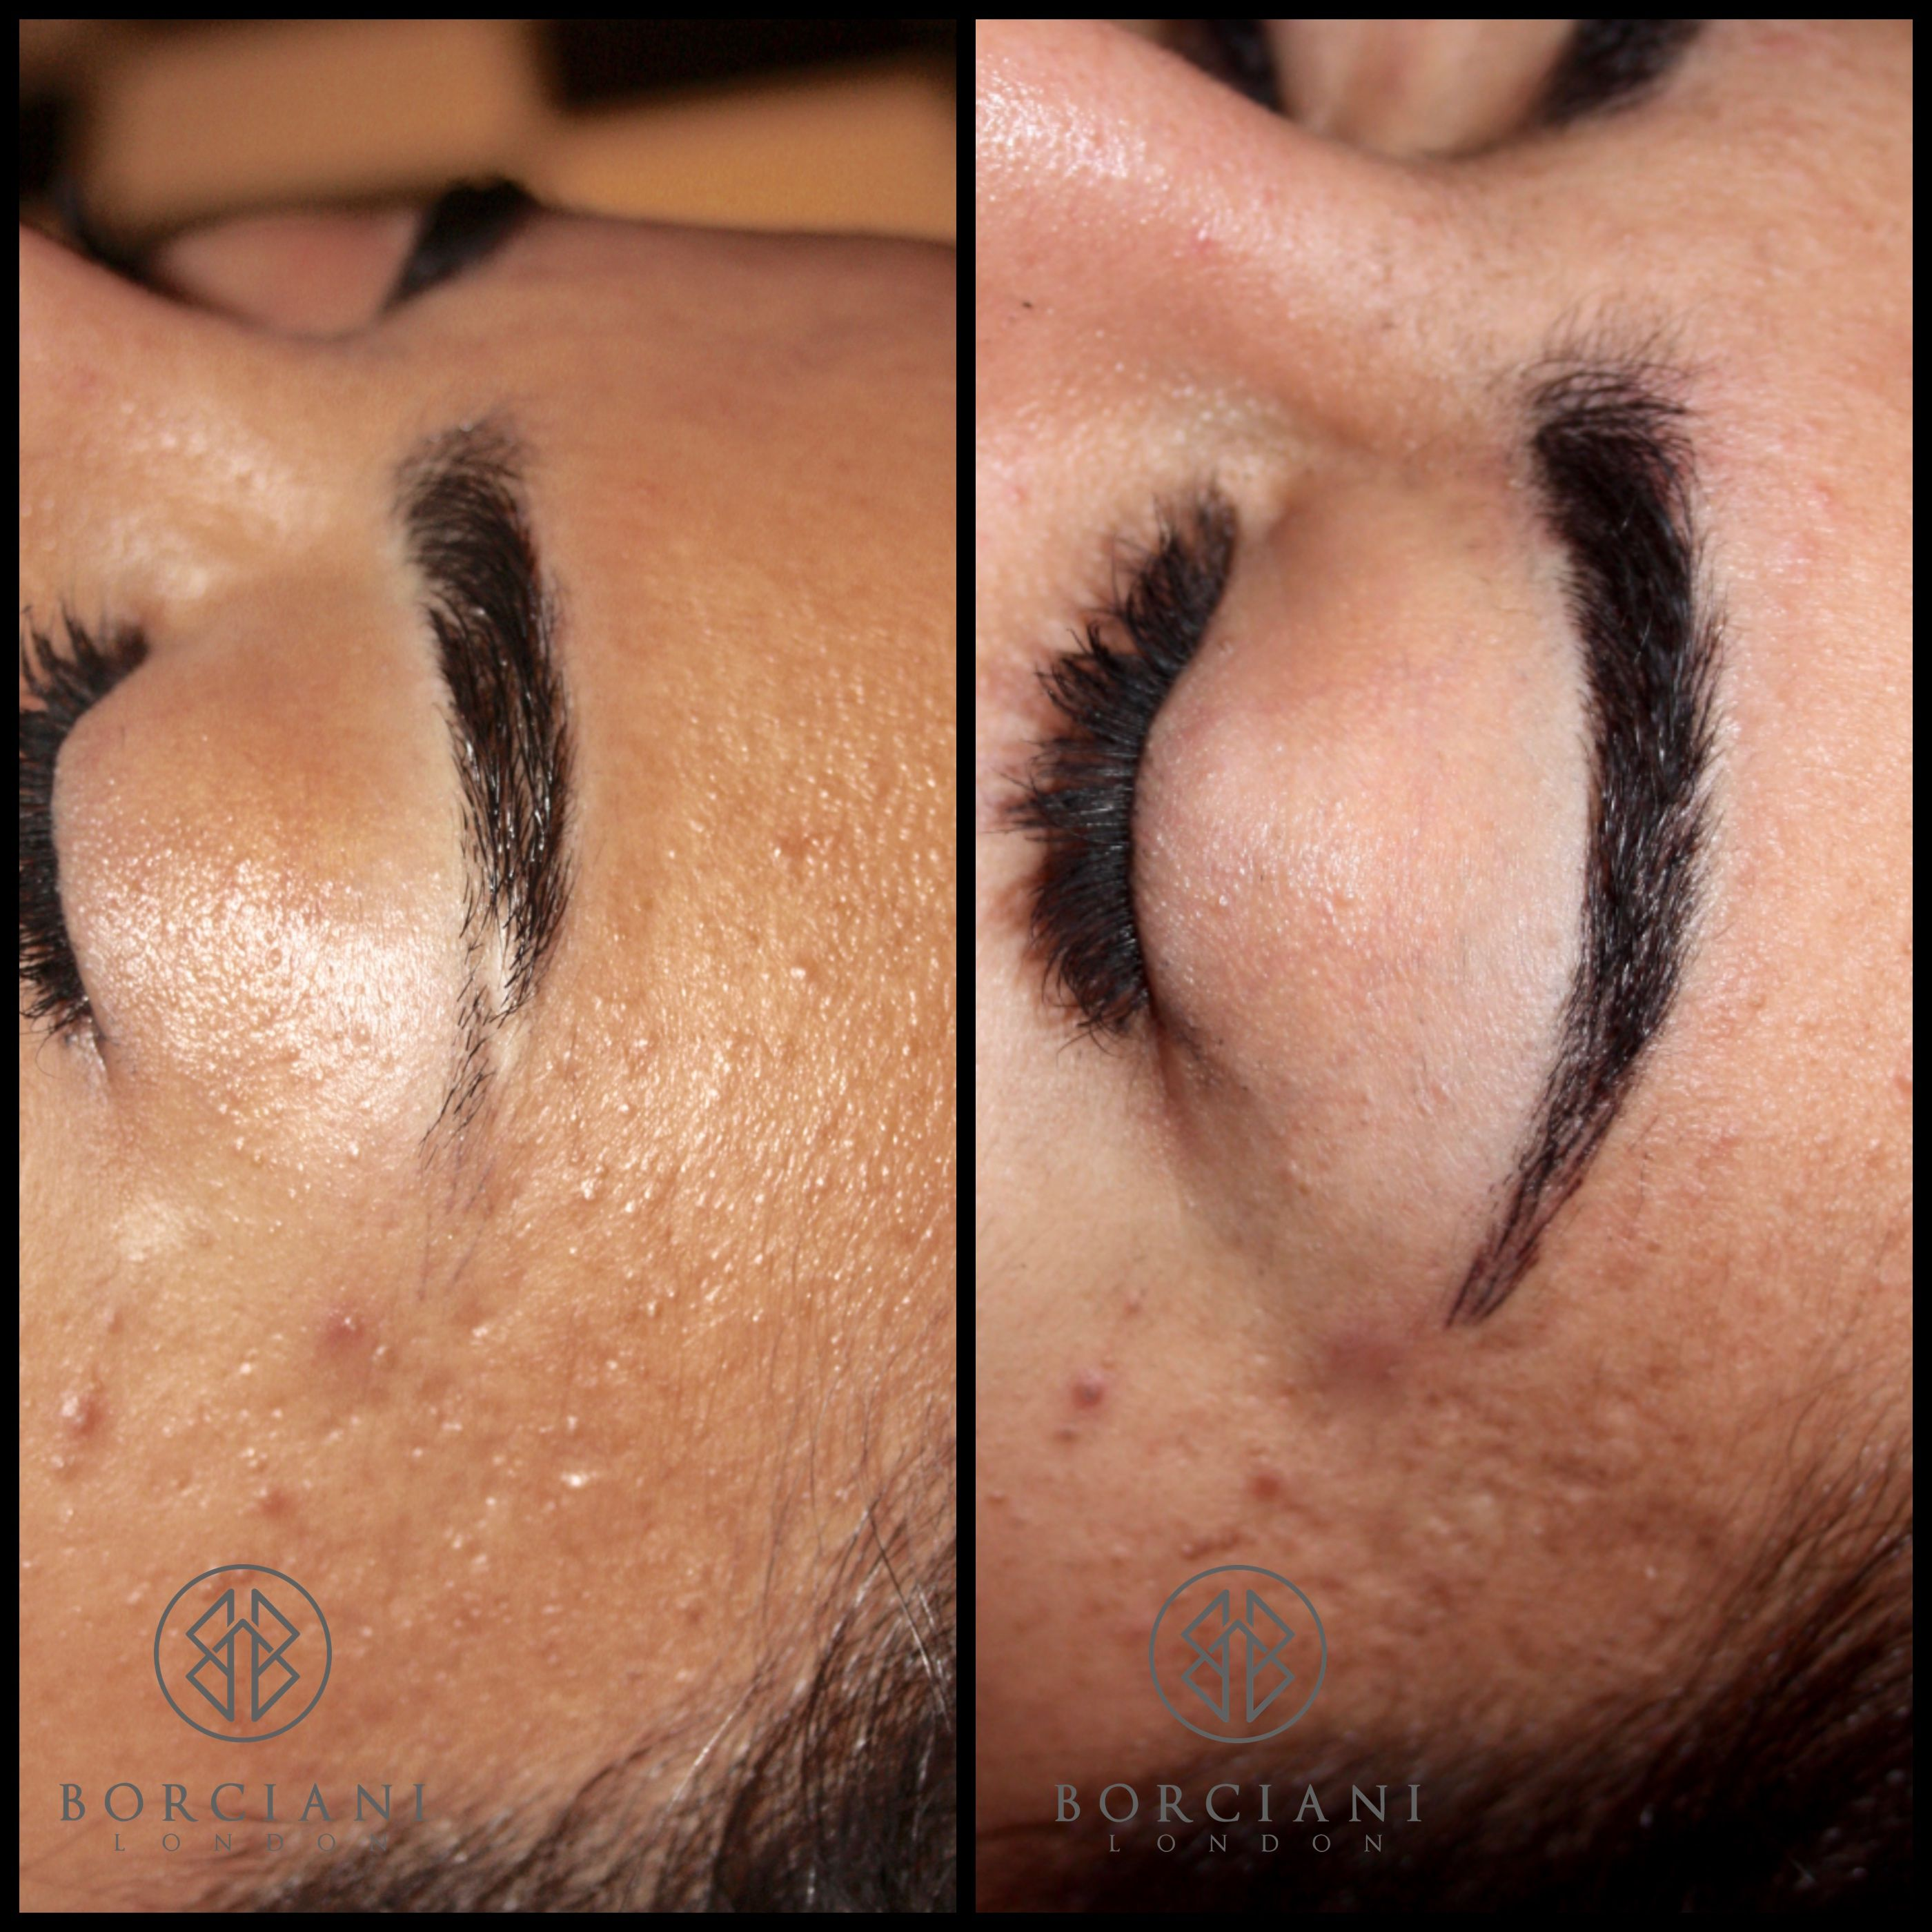 We covered this scar and elongated the brow to create a